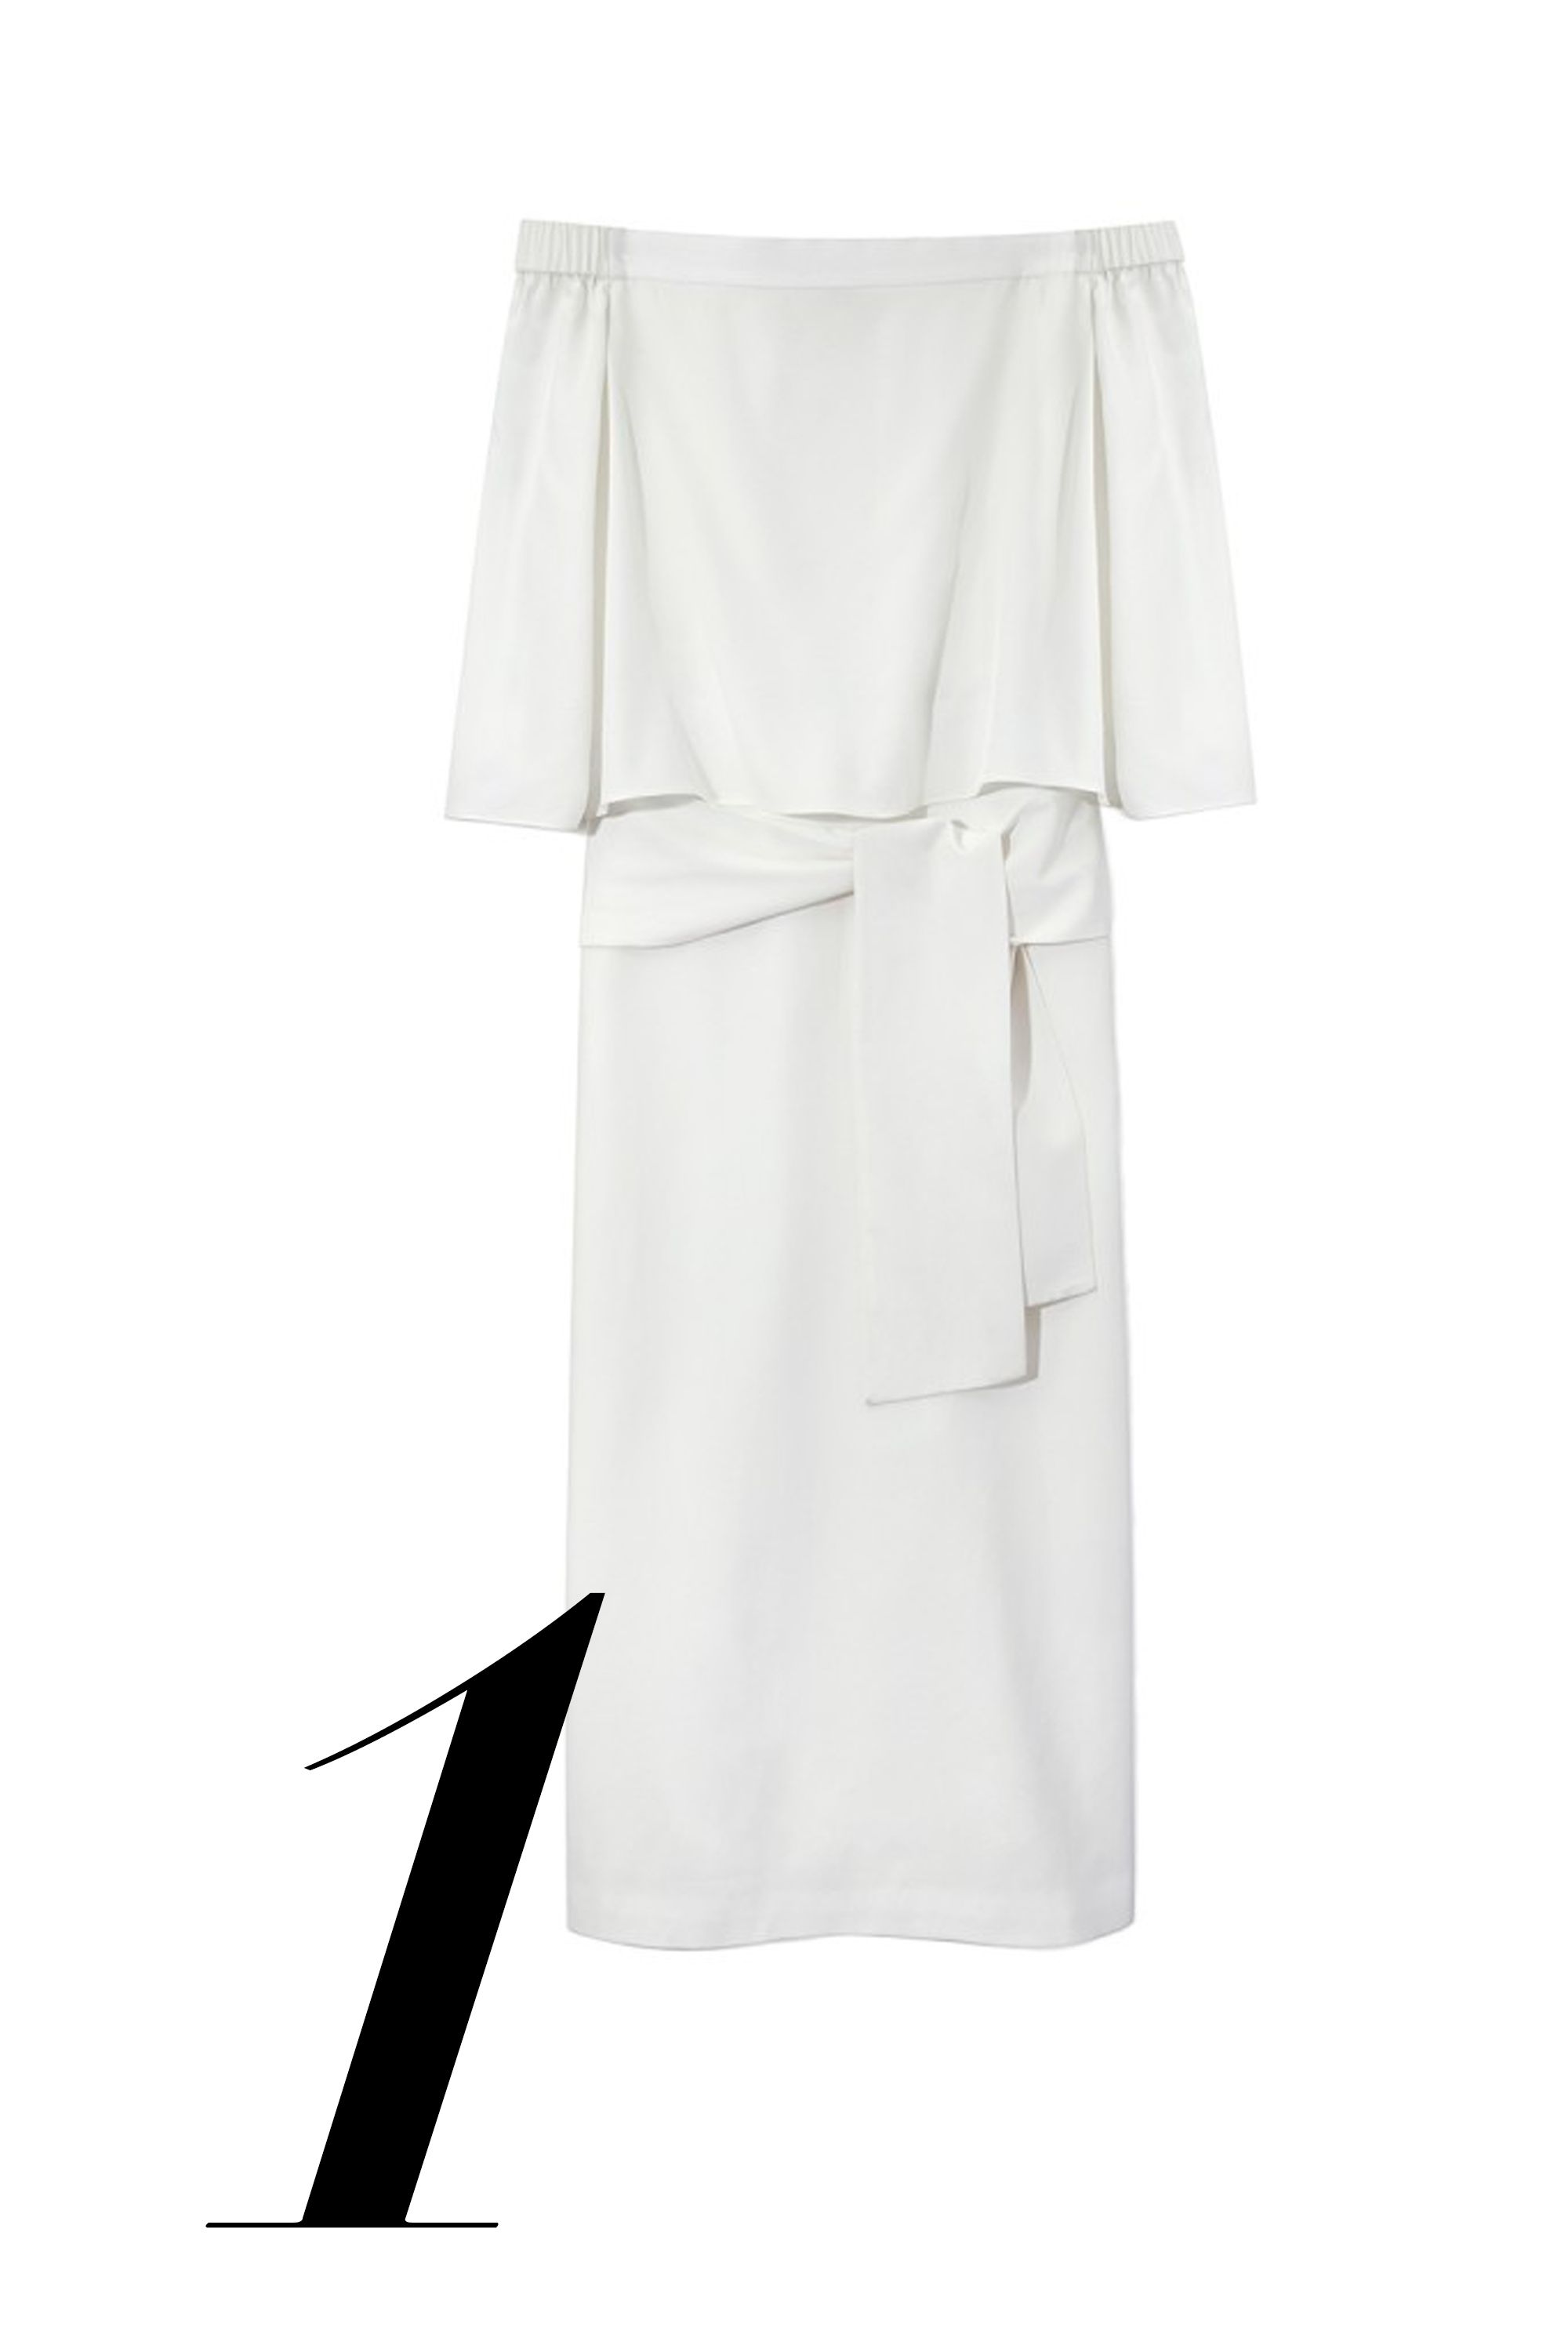 "<em>Tibi dress, $595, <a href=""http://shop.harpersbazaar.com/designers/tibi/white-off-the-shoulder-dress/"" target=""_blank"">shopBAZAAR.com</a>.</em>"